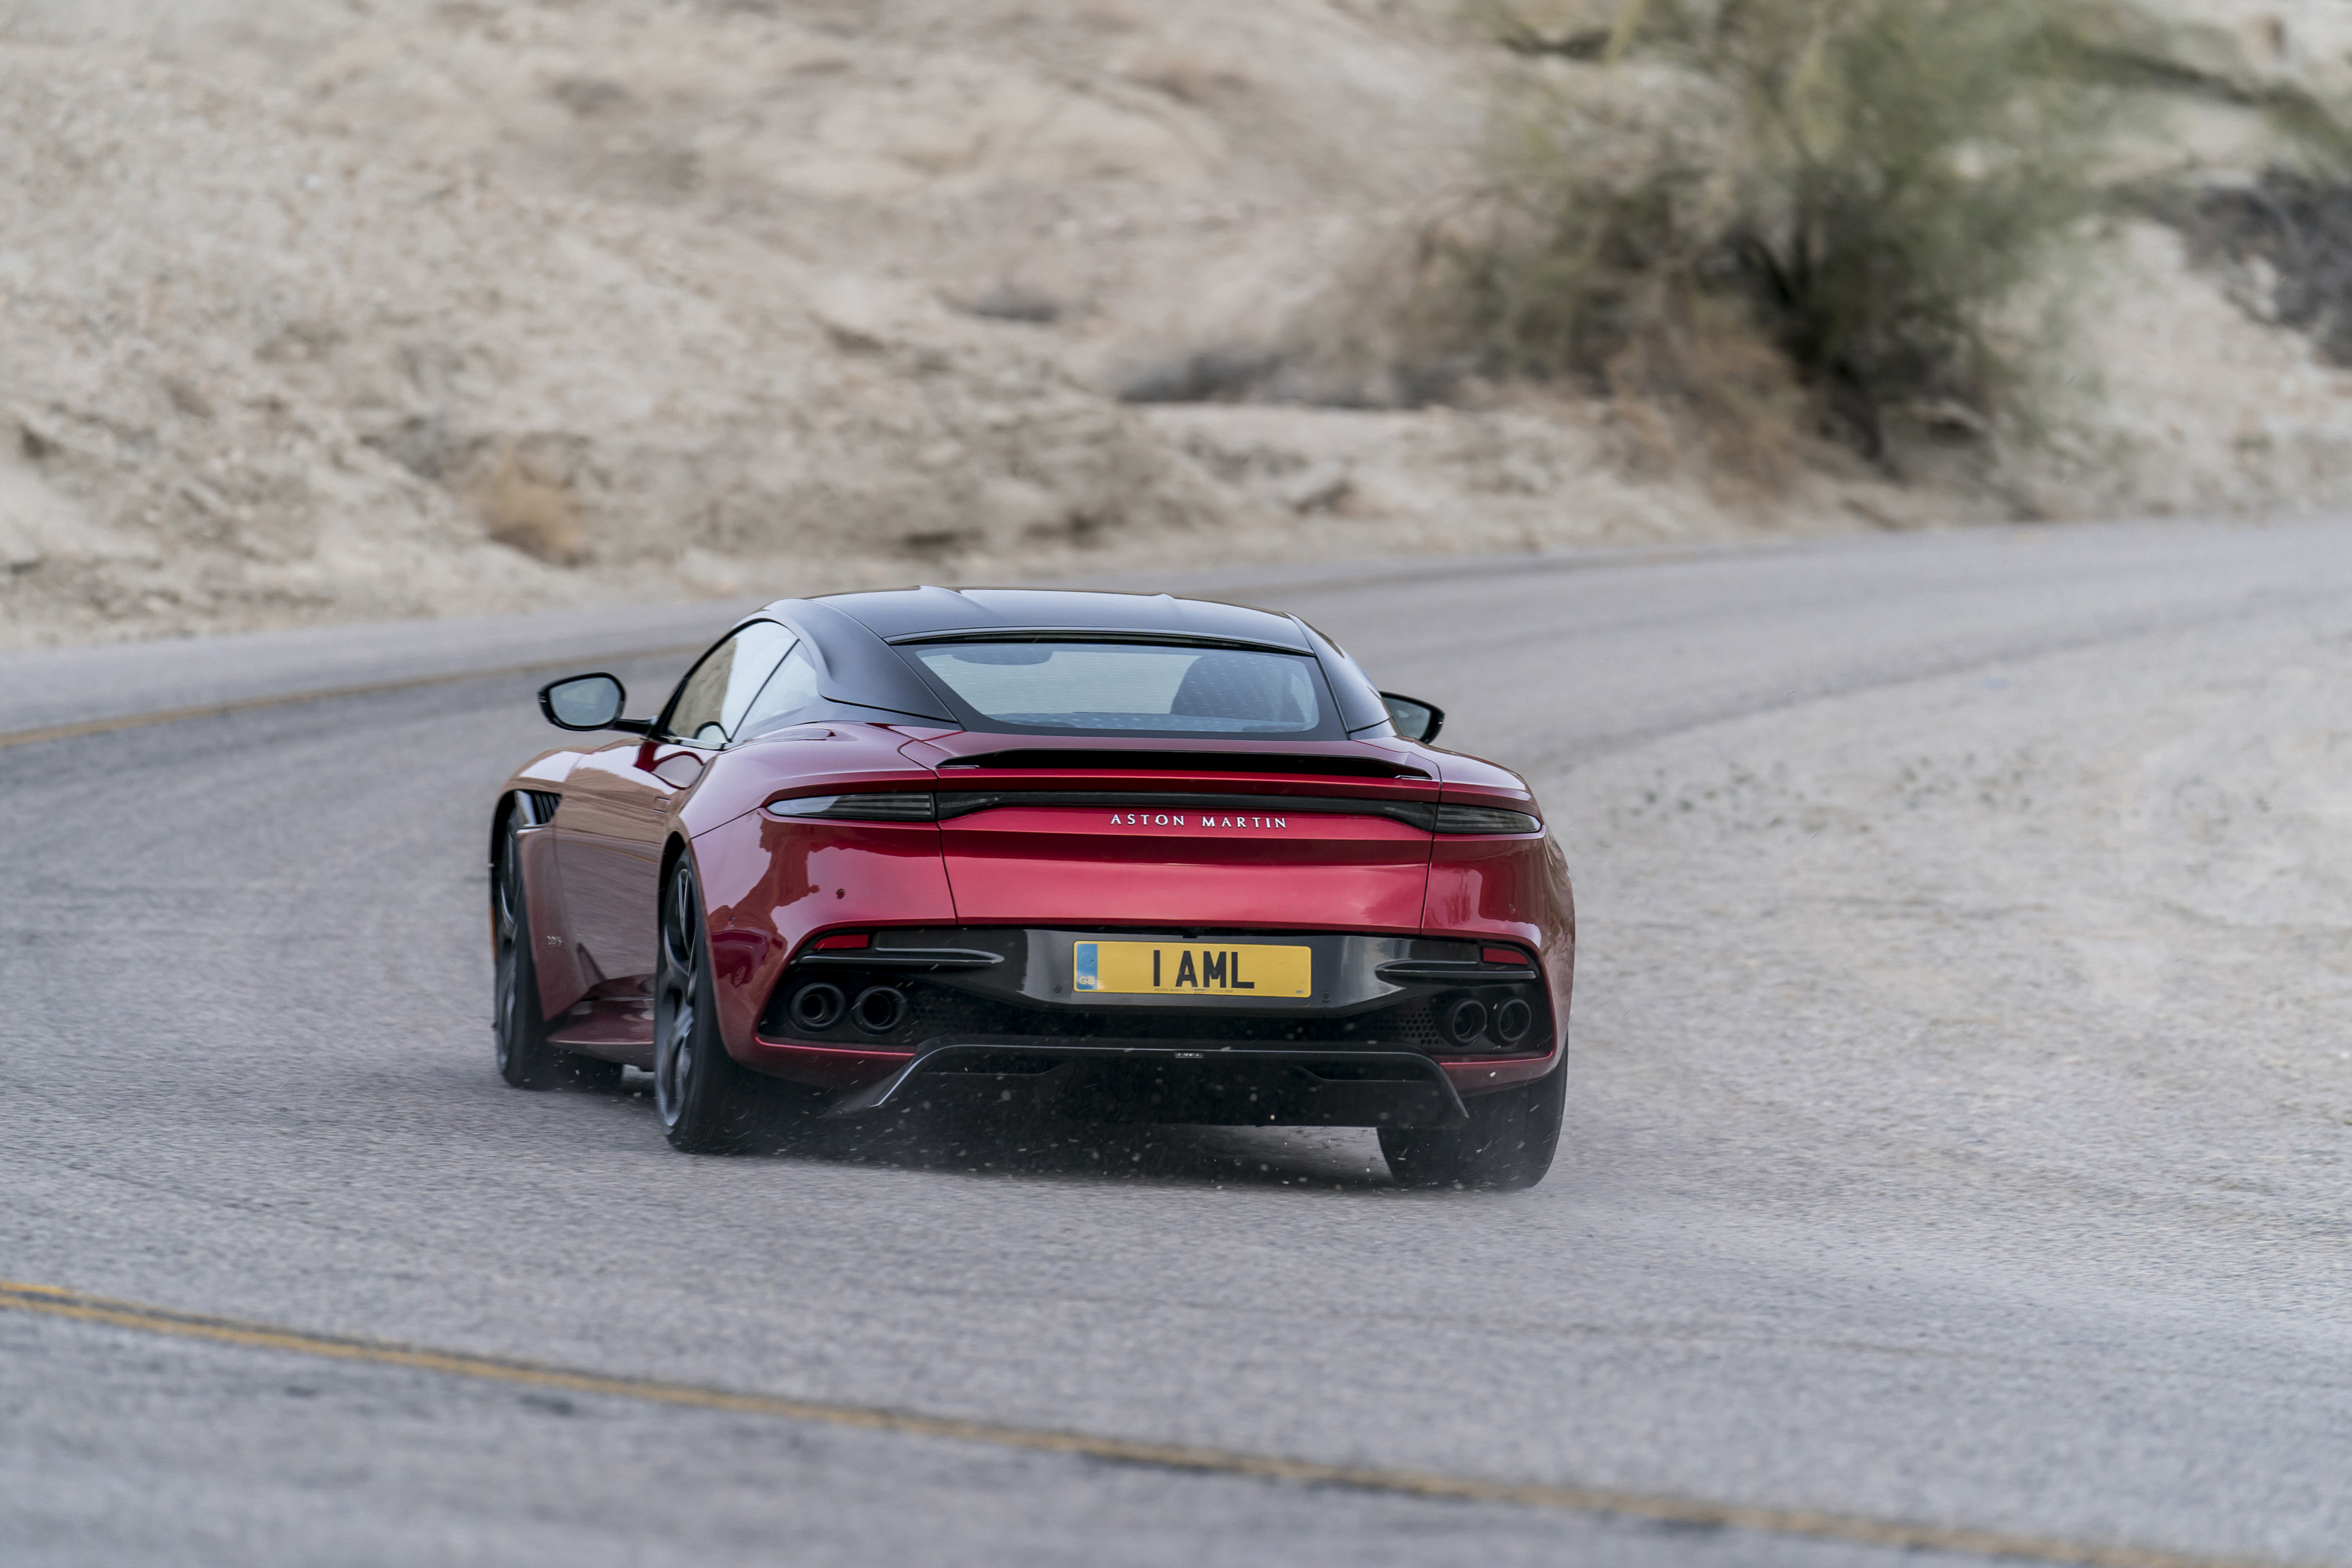 which cars could possibly compare with the aston martin dbs